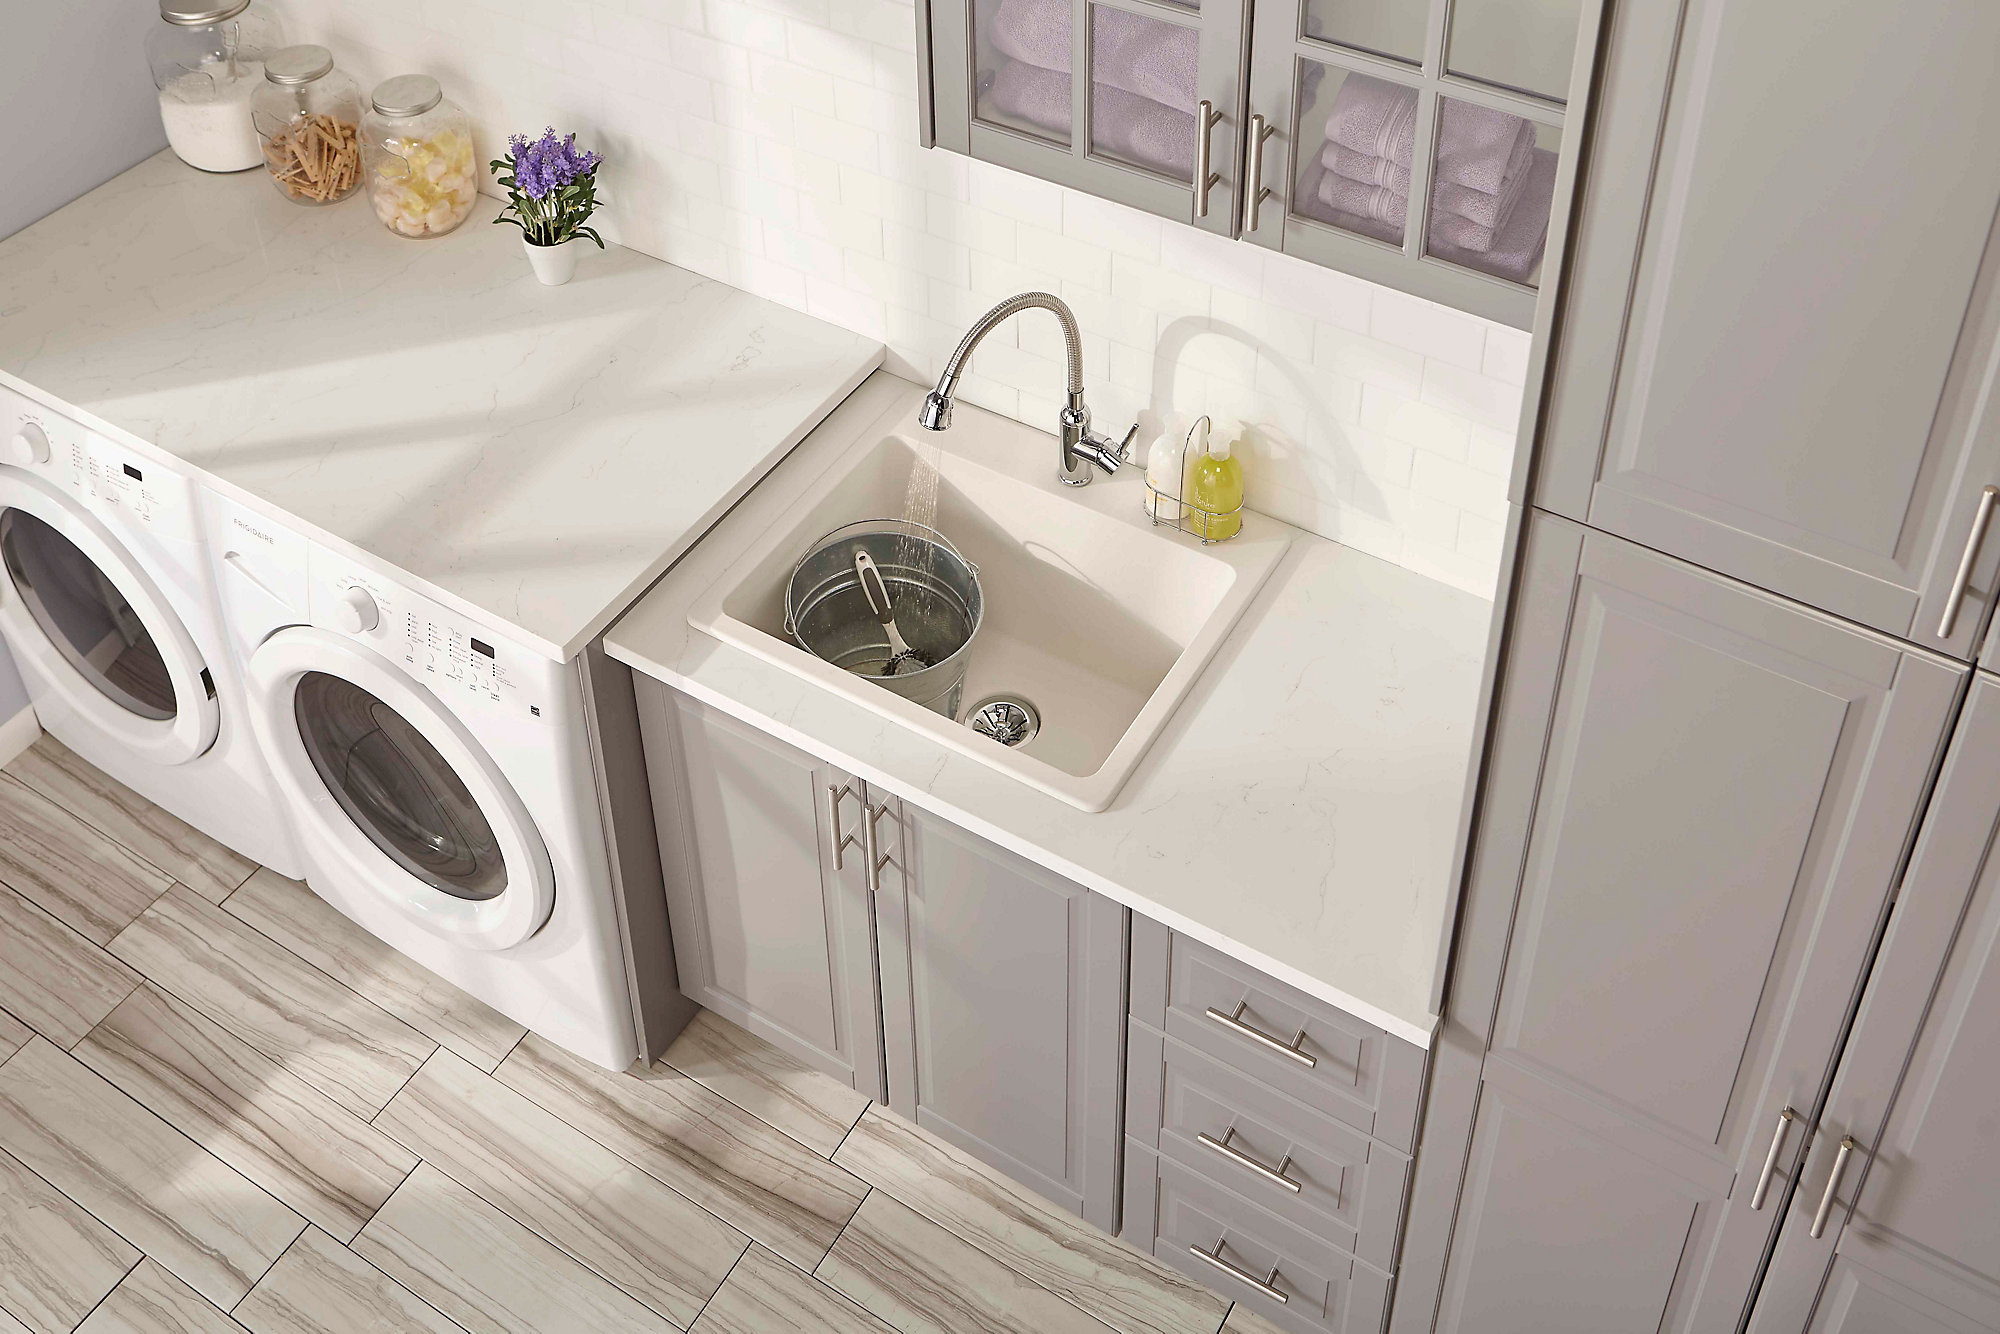 The Quartz Classic® Single Bowl Laundry Sink with Perfect Drain, shown here, is extra deep and chip-resistant.